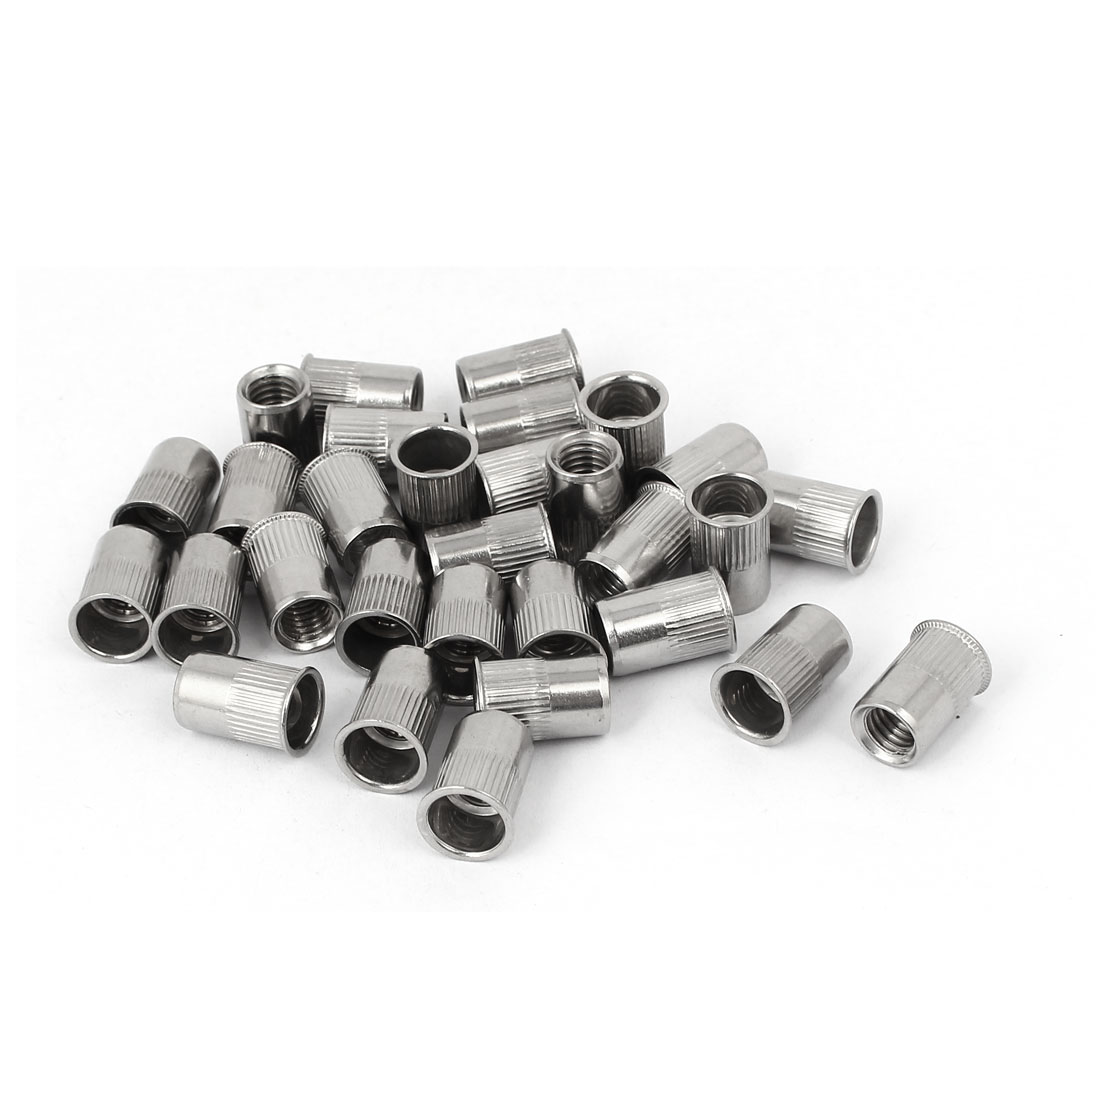 M8 x 17mm 304 Stainless Steel Countersunk Head Rivet Nut Insert Nutsert 30PCS